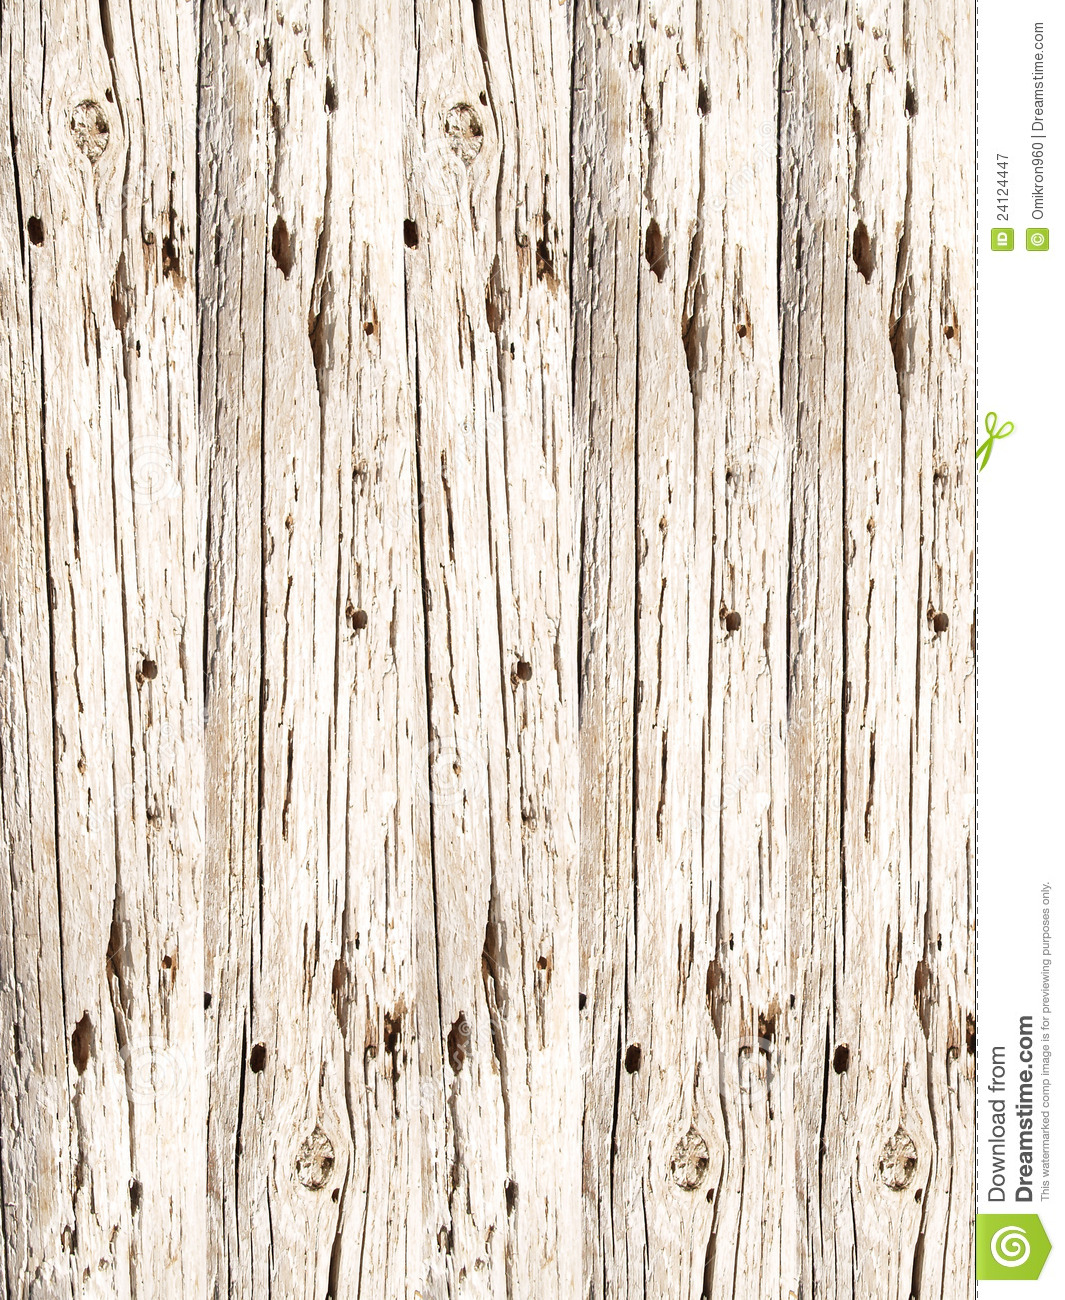 old wood texture stock image image of pattern wood 24124447. Black Bedroom Furniture Sets. Home Design Ideas